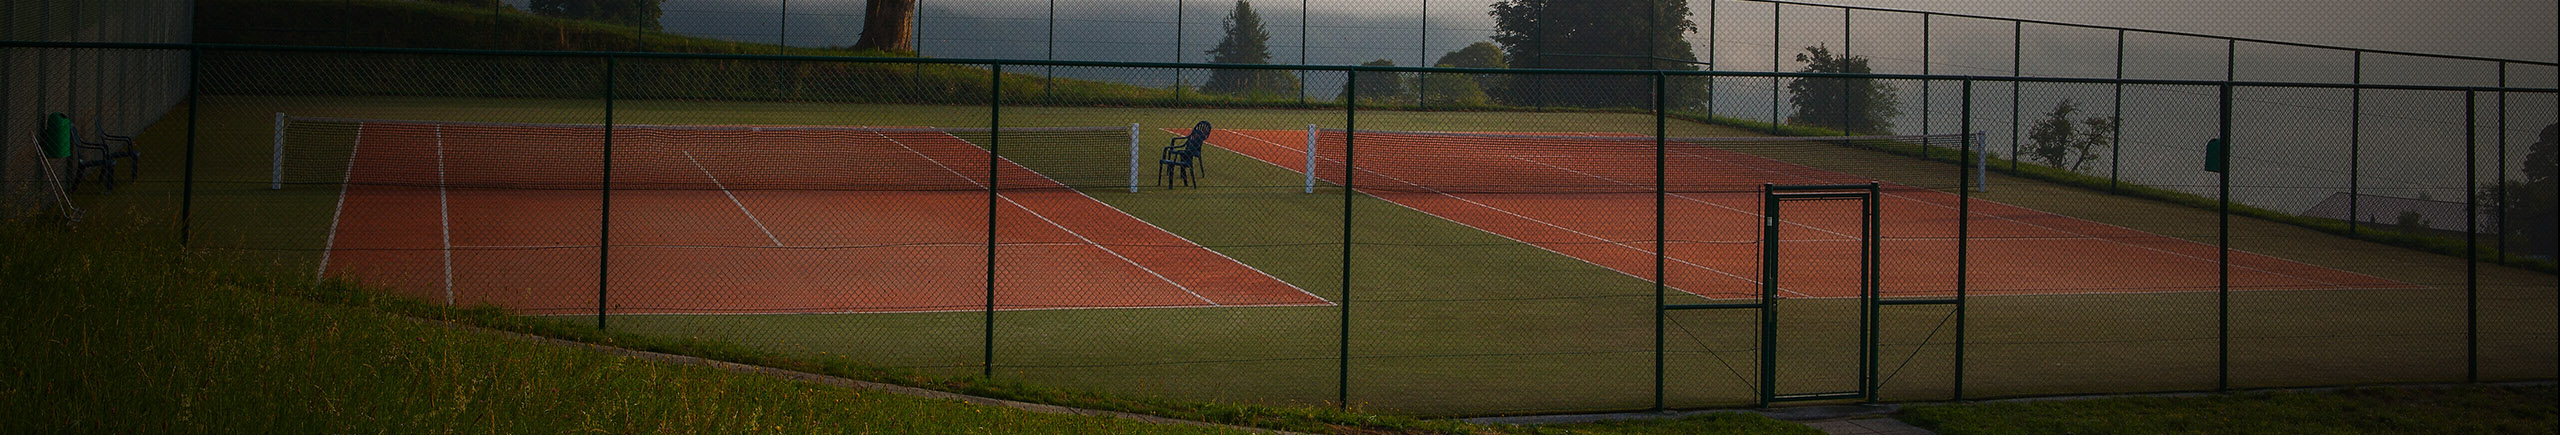 tennis court pavers